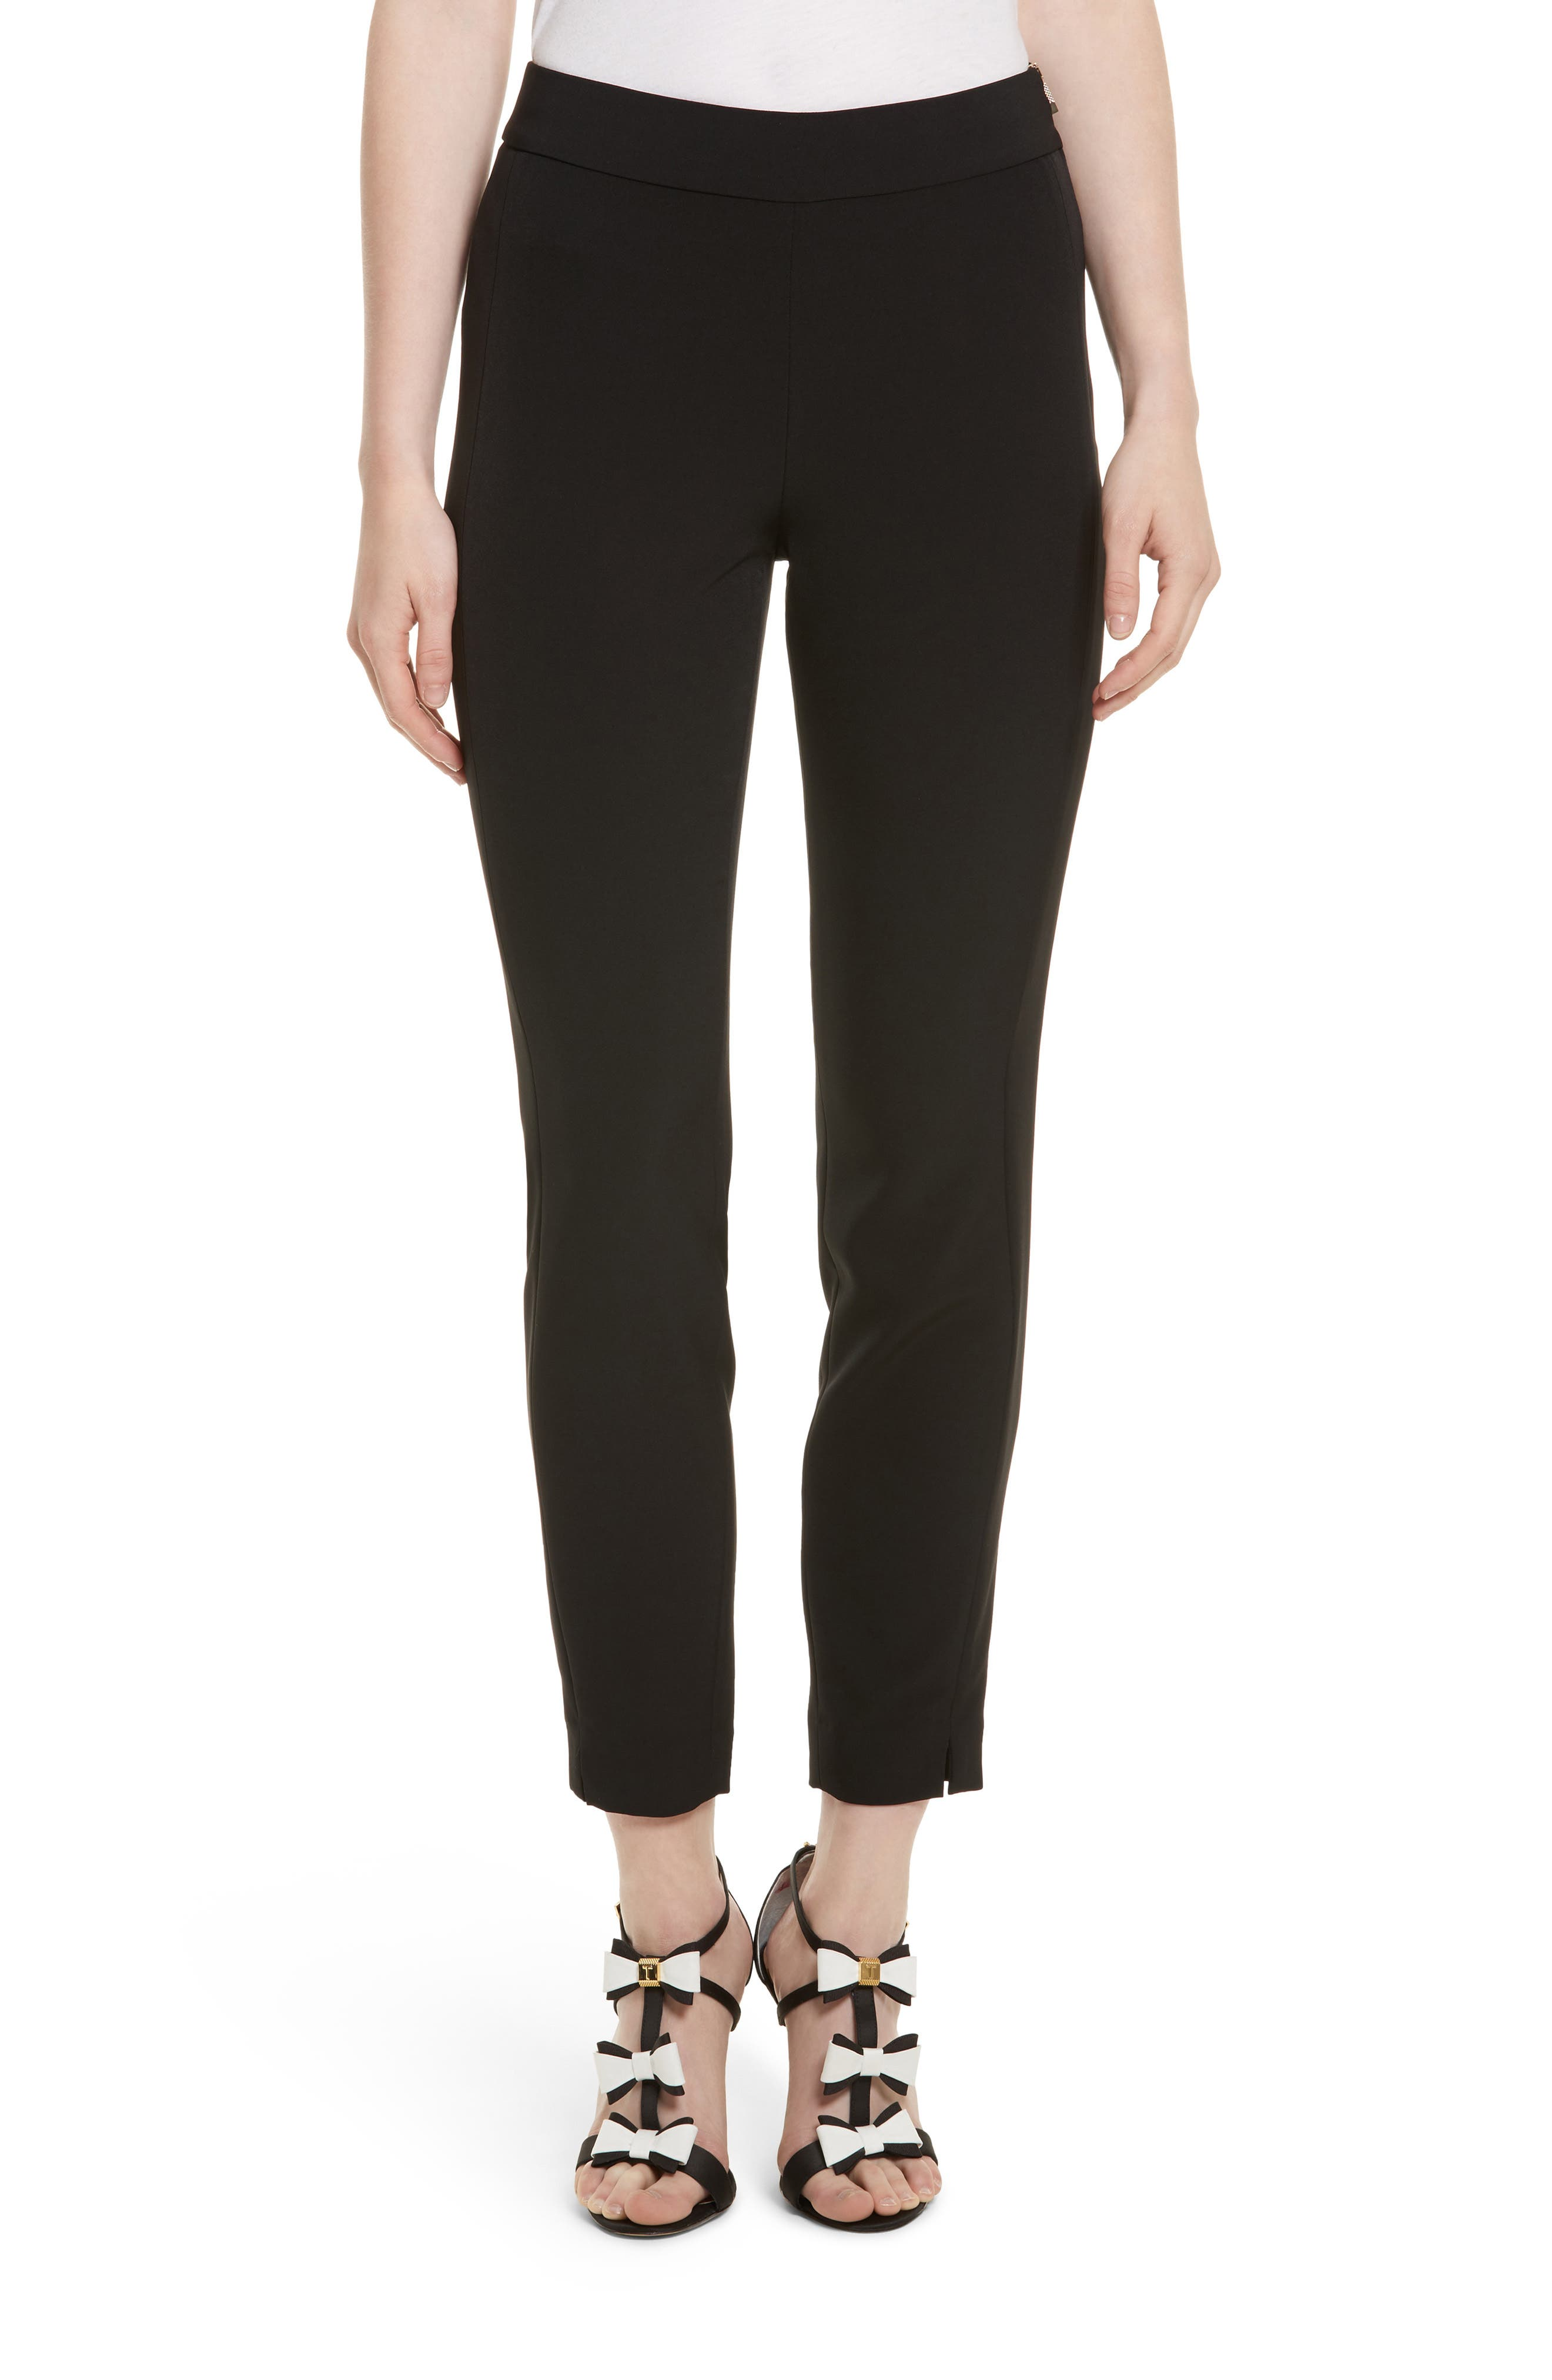 Alternate Image 1 Selected - Ted Baker London Fearnid Skinny Ankle Grazer Pants